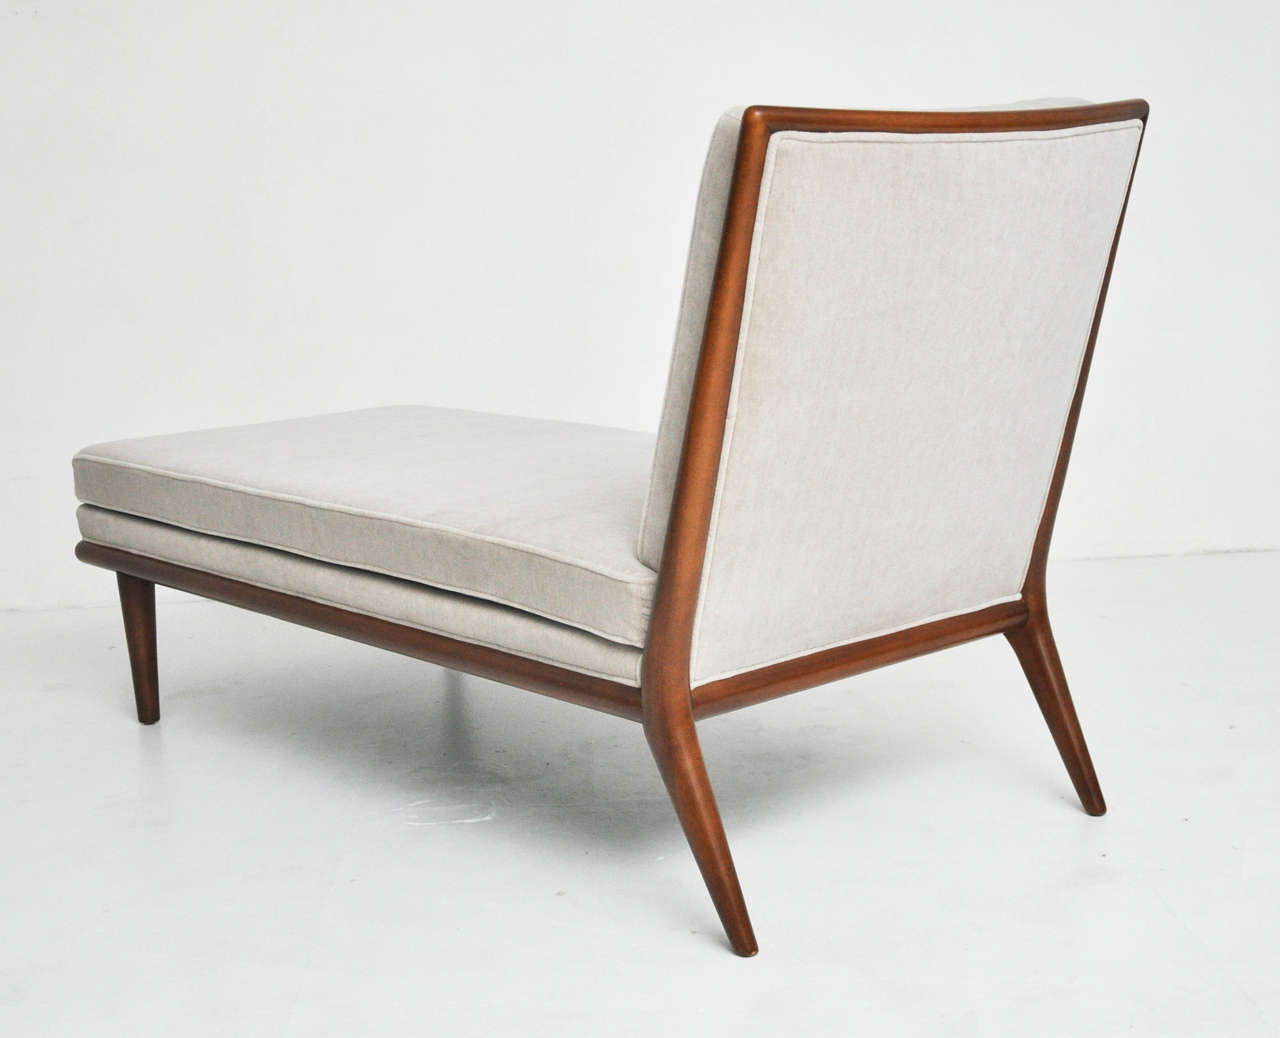 T h robsjohn gibbings chaise longue for sale at 1stdibs for Chaise longue sale